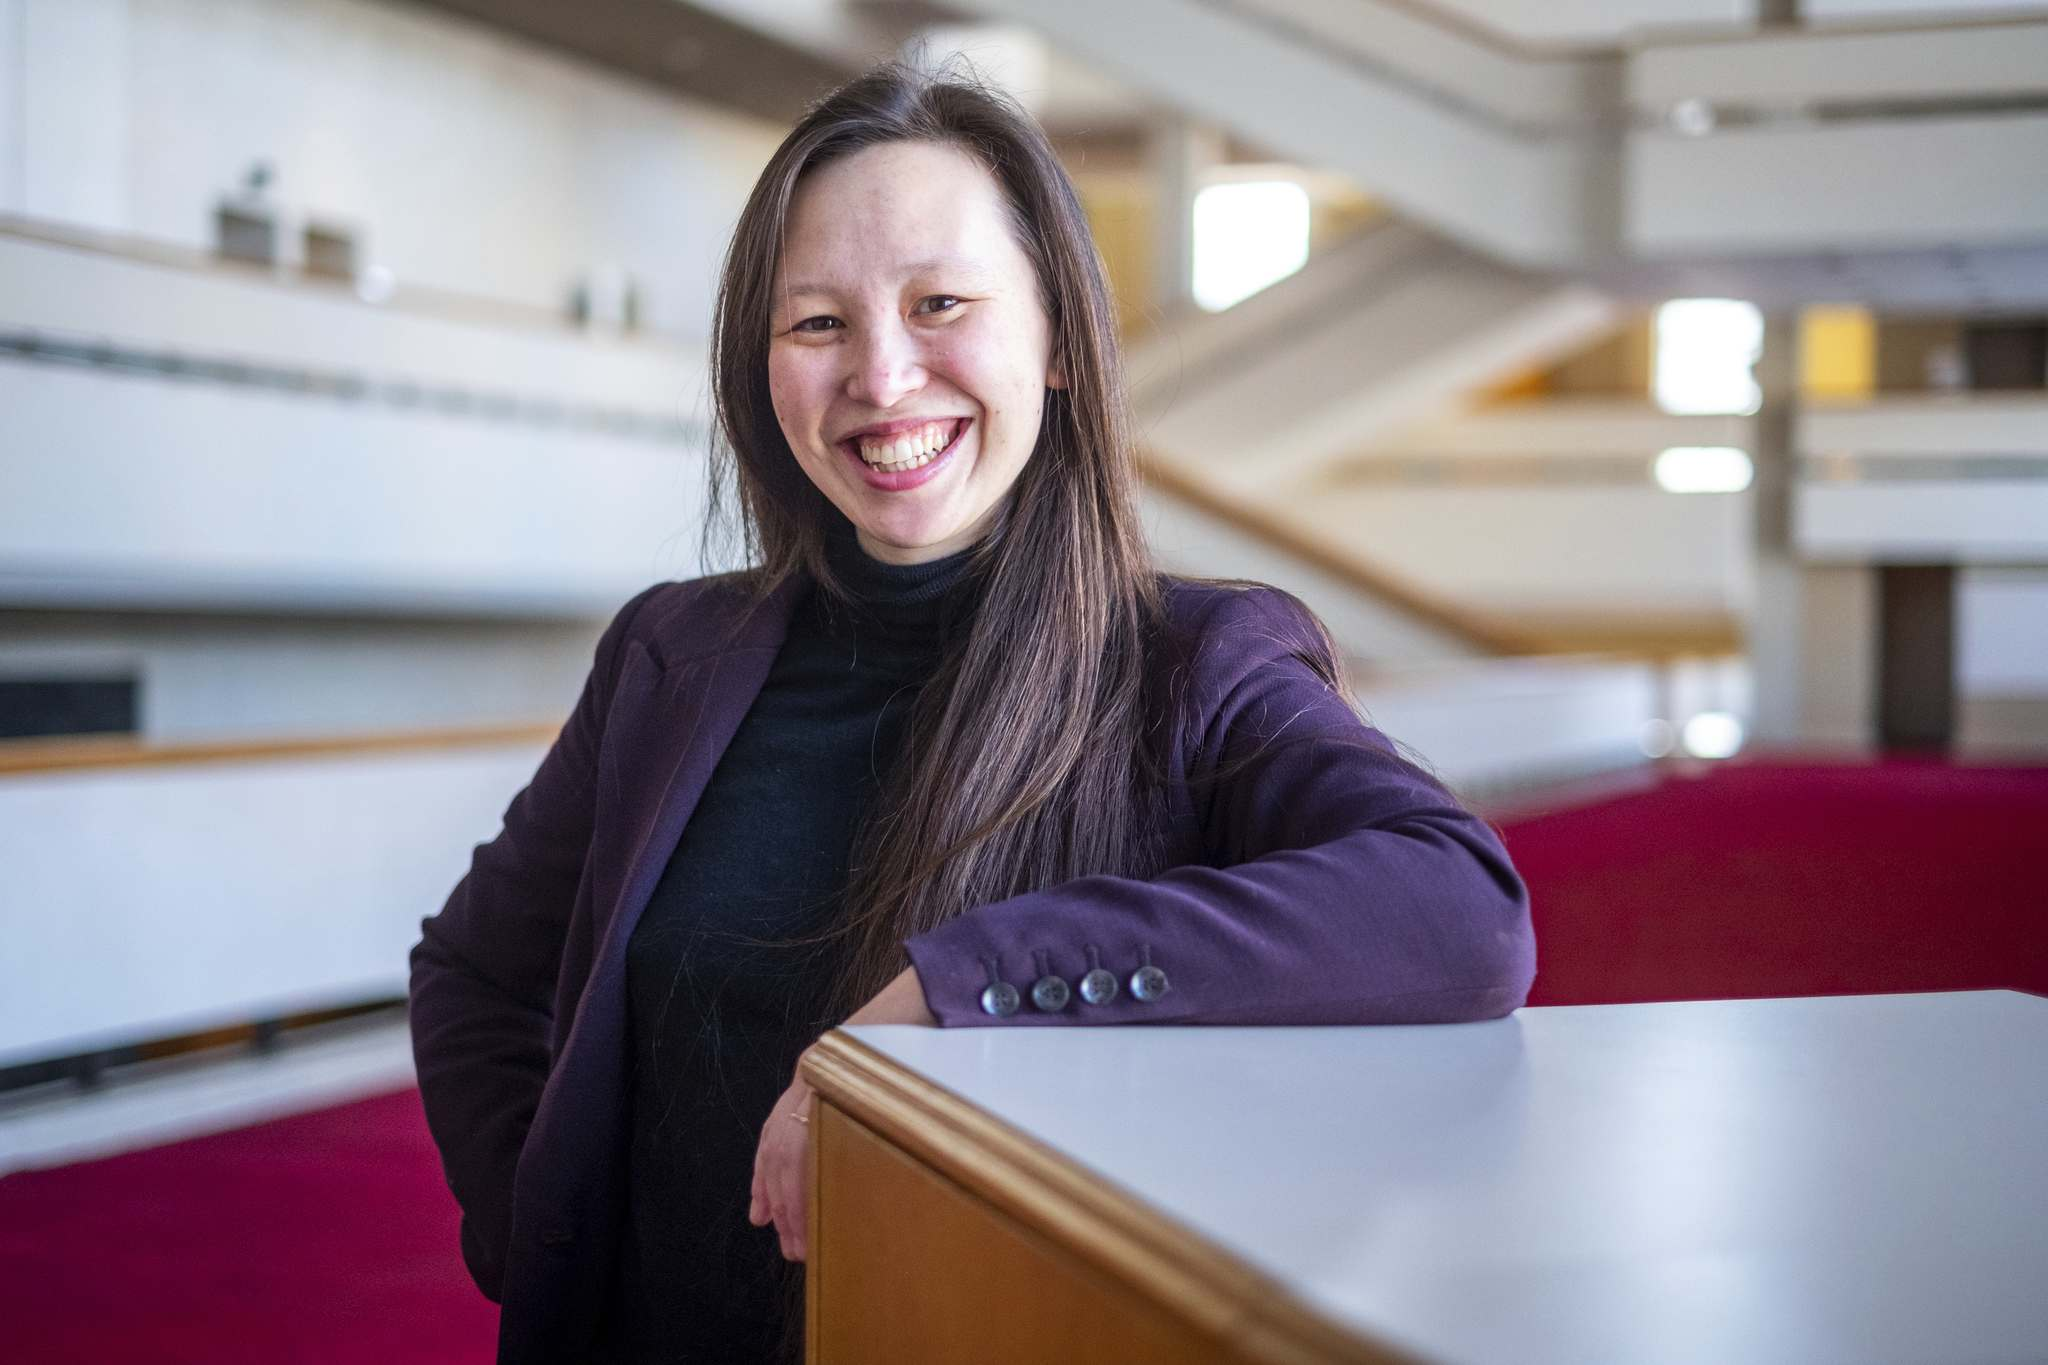 Naomi Woo is an assistant conductor with the Winnipeg Symphony Orchestra. She says young women with aspirations for careers in music should follow their passion and not be afraid.</p></p>